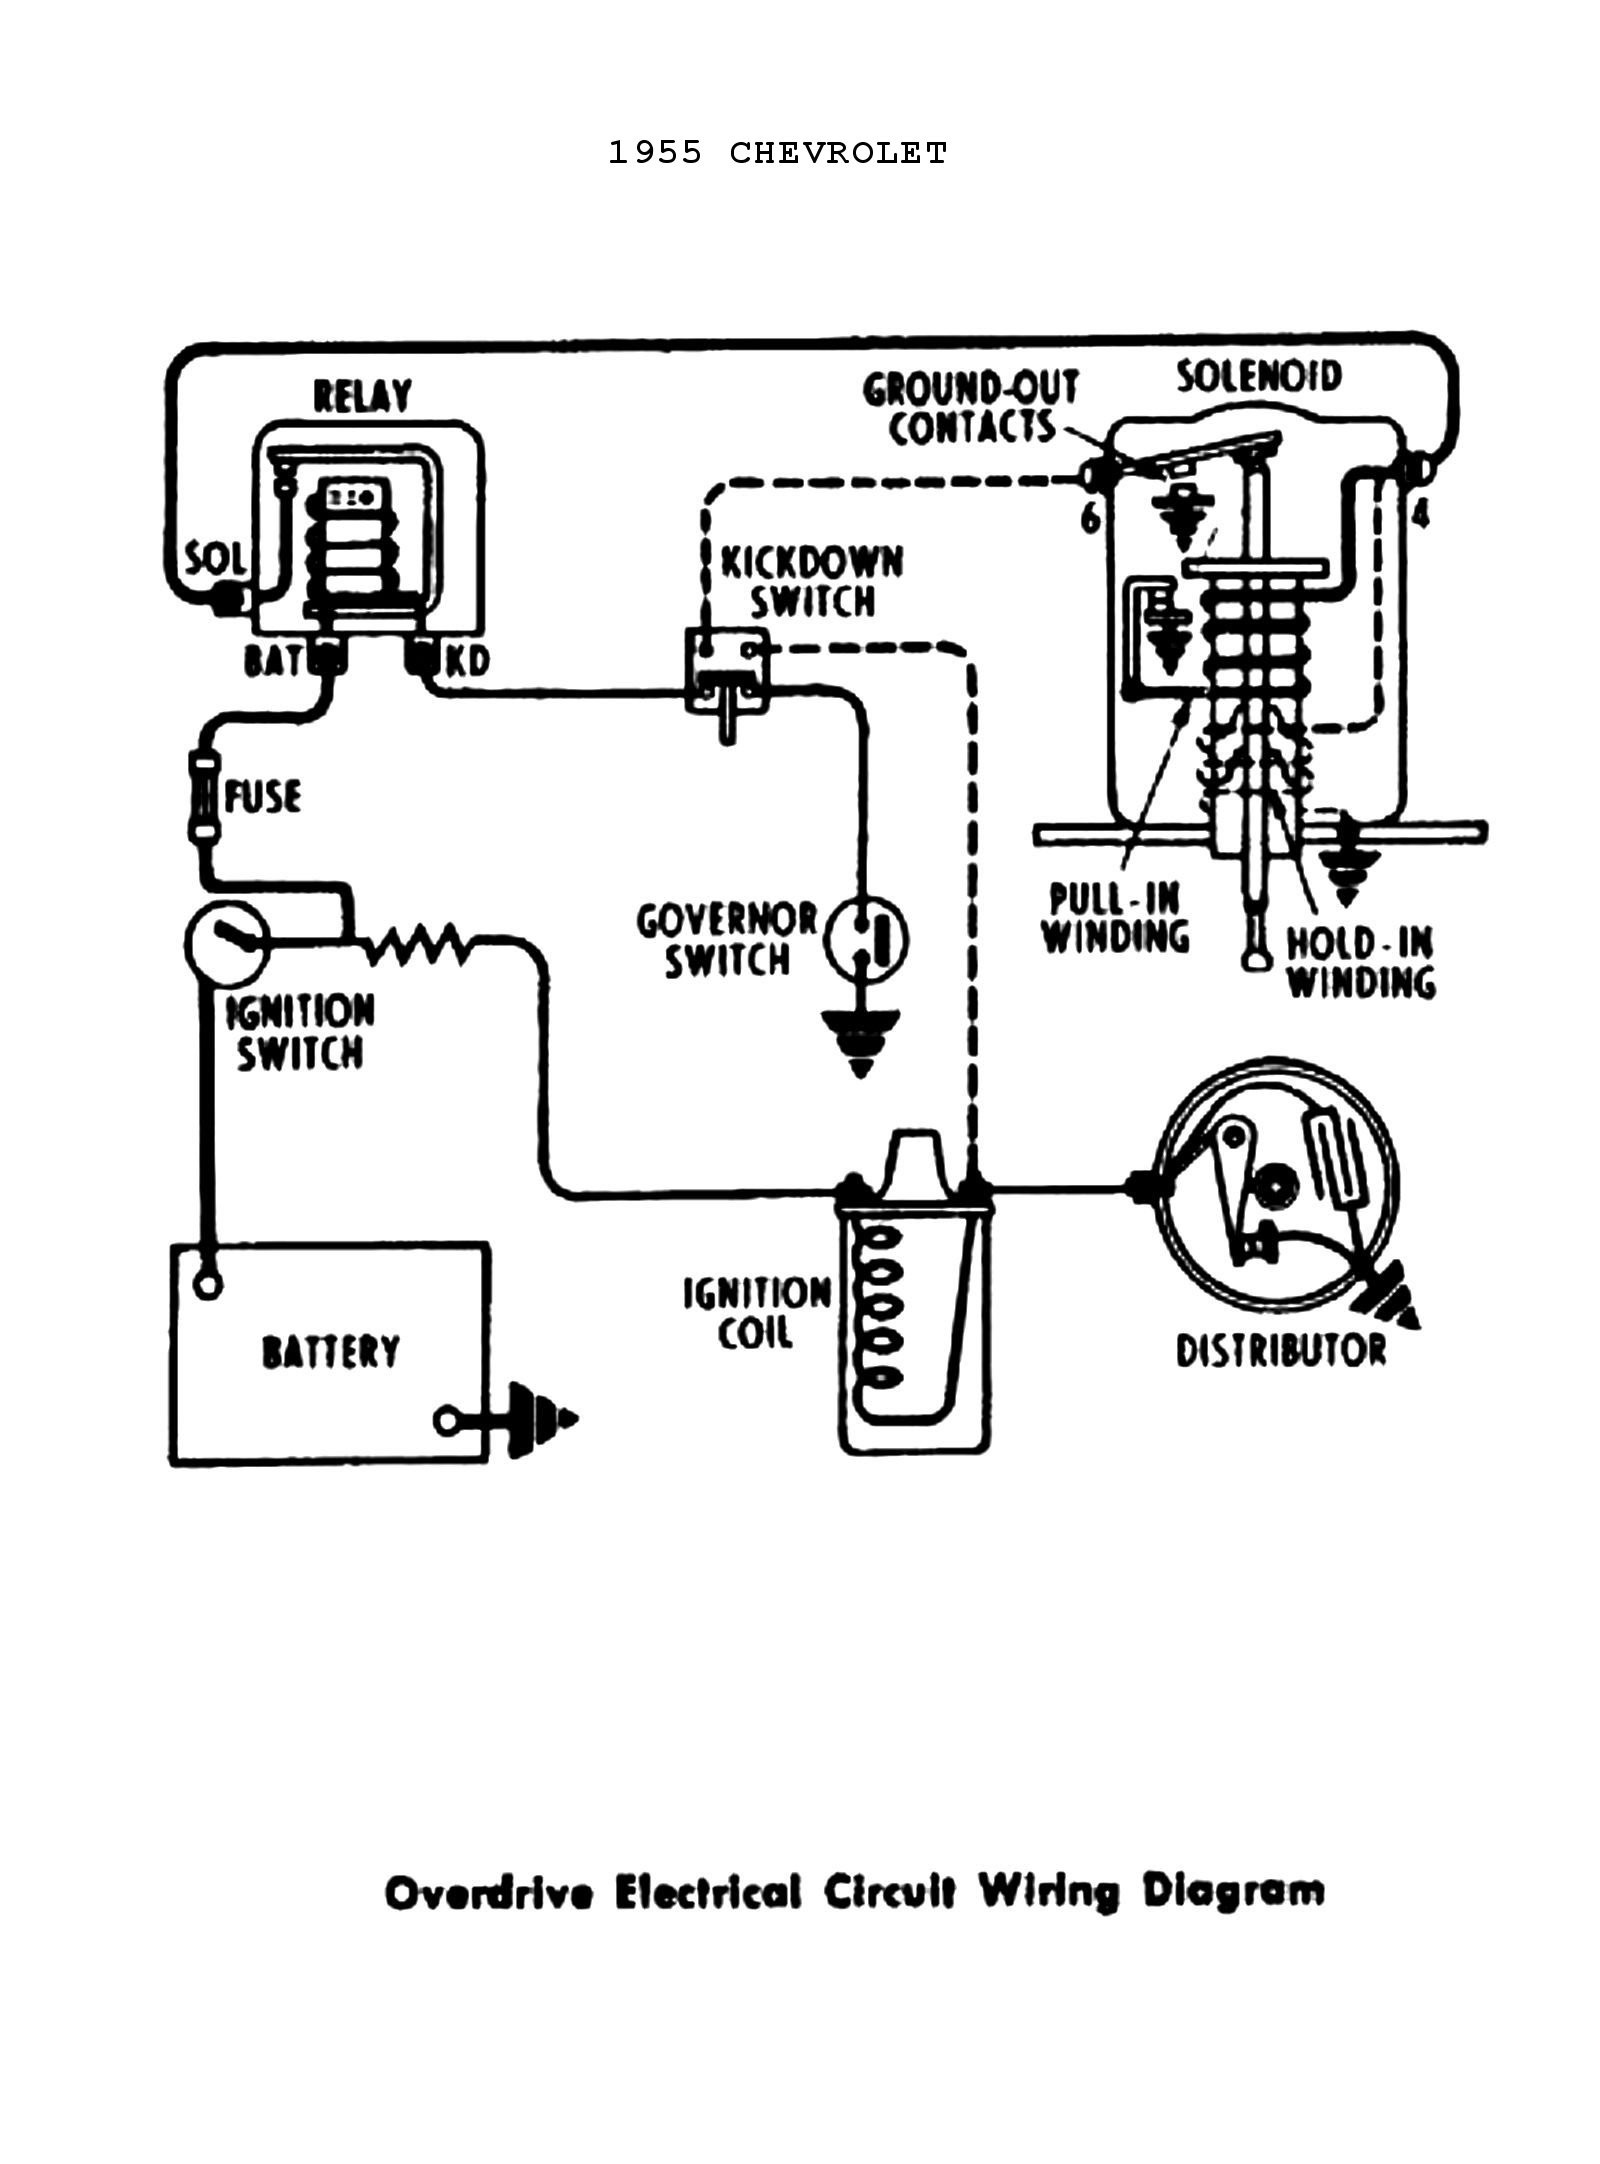 Power window switch diagram wiring diagram in addition 57 chevy heater diagram also 1996 chevy